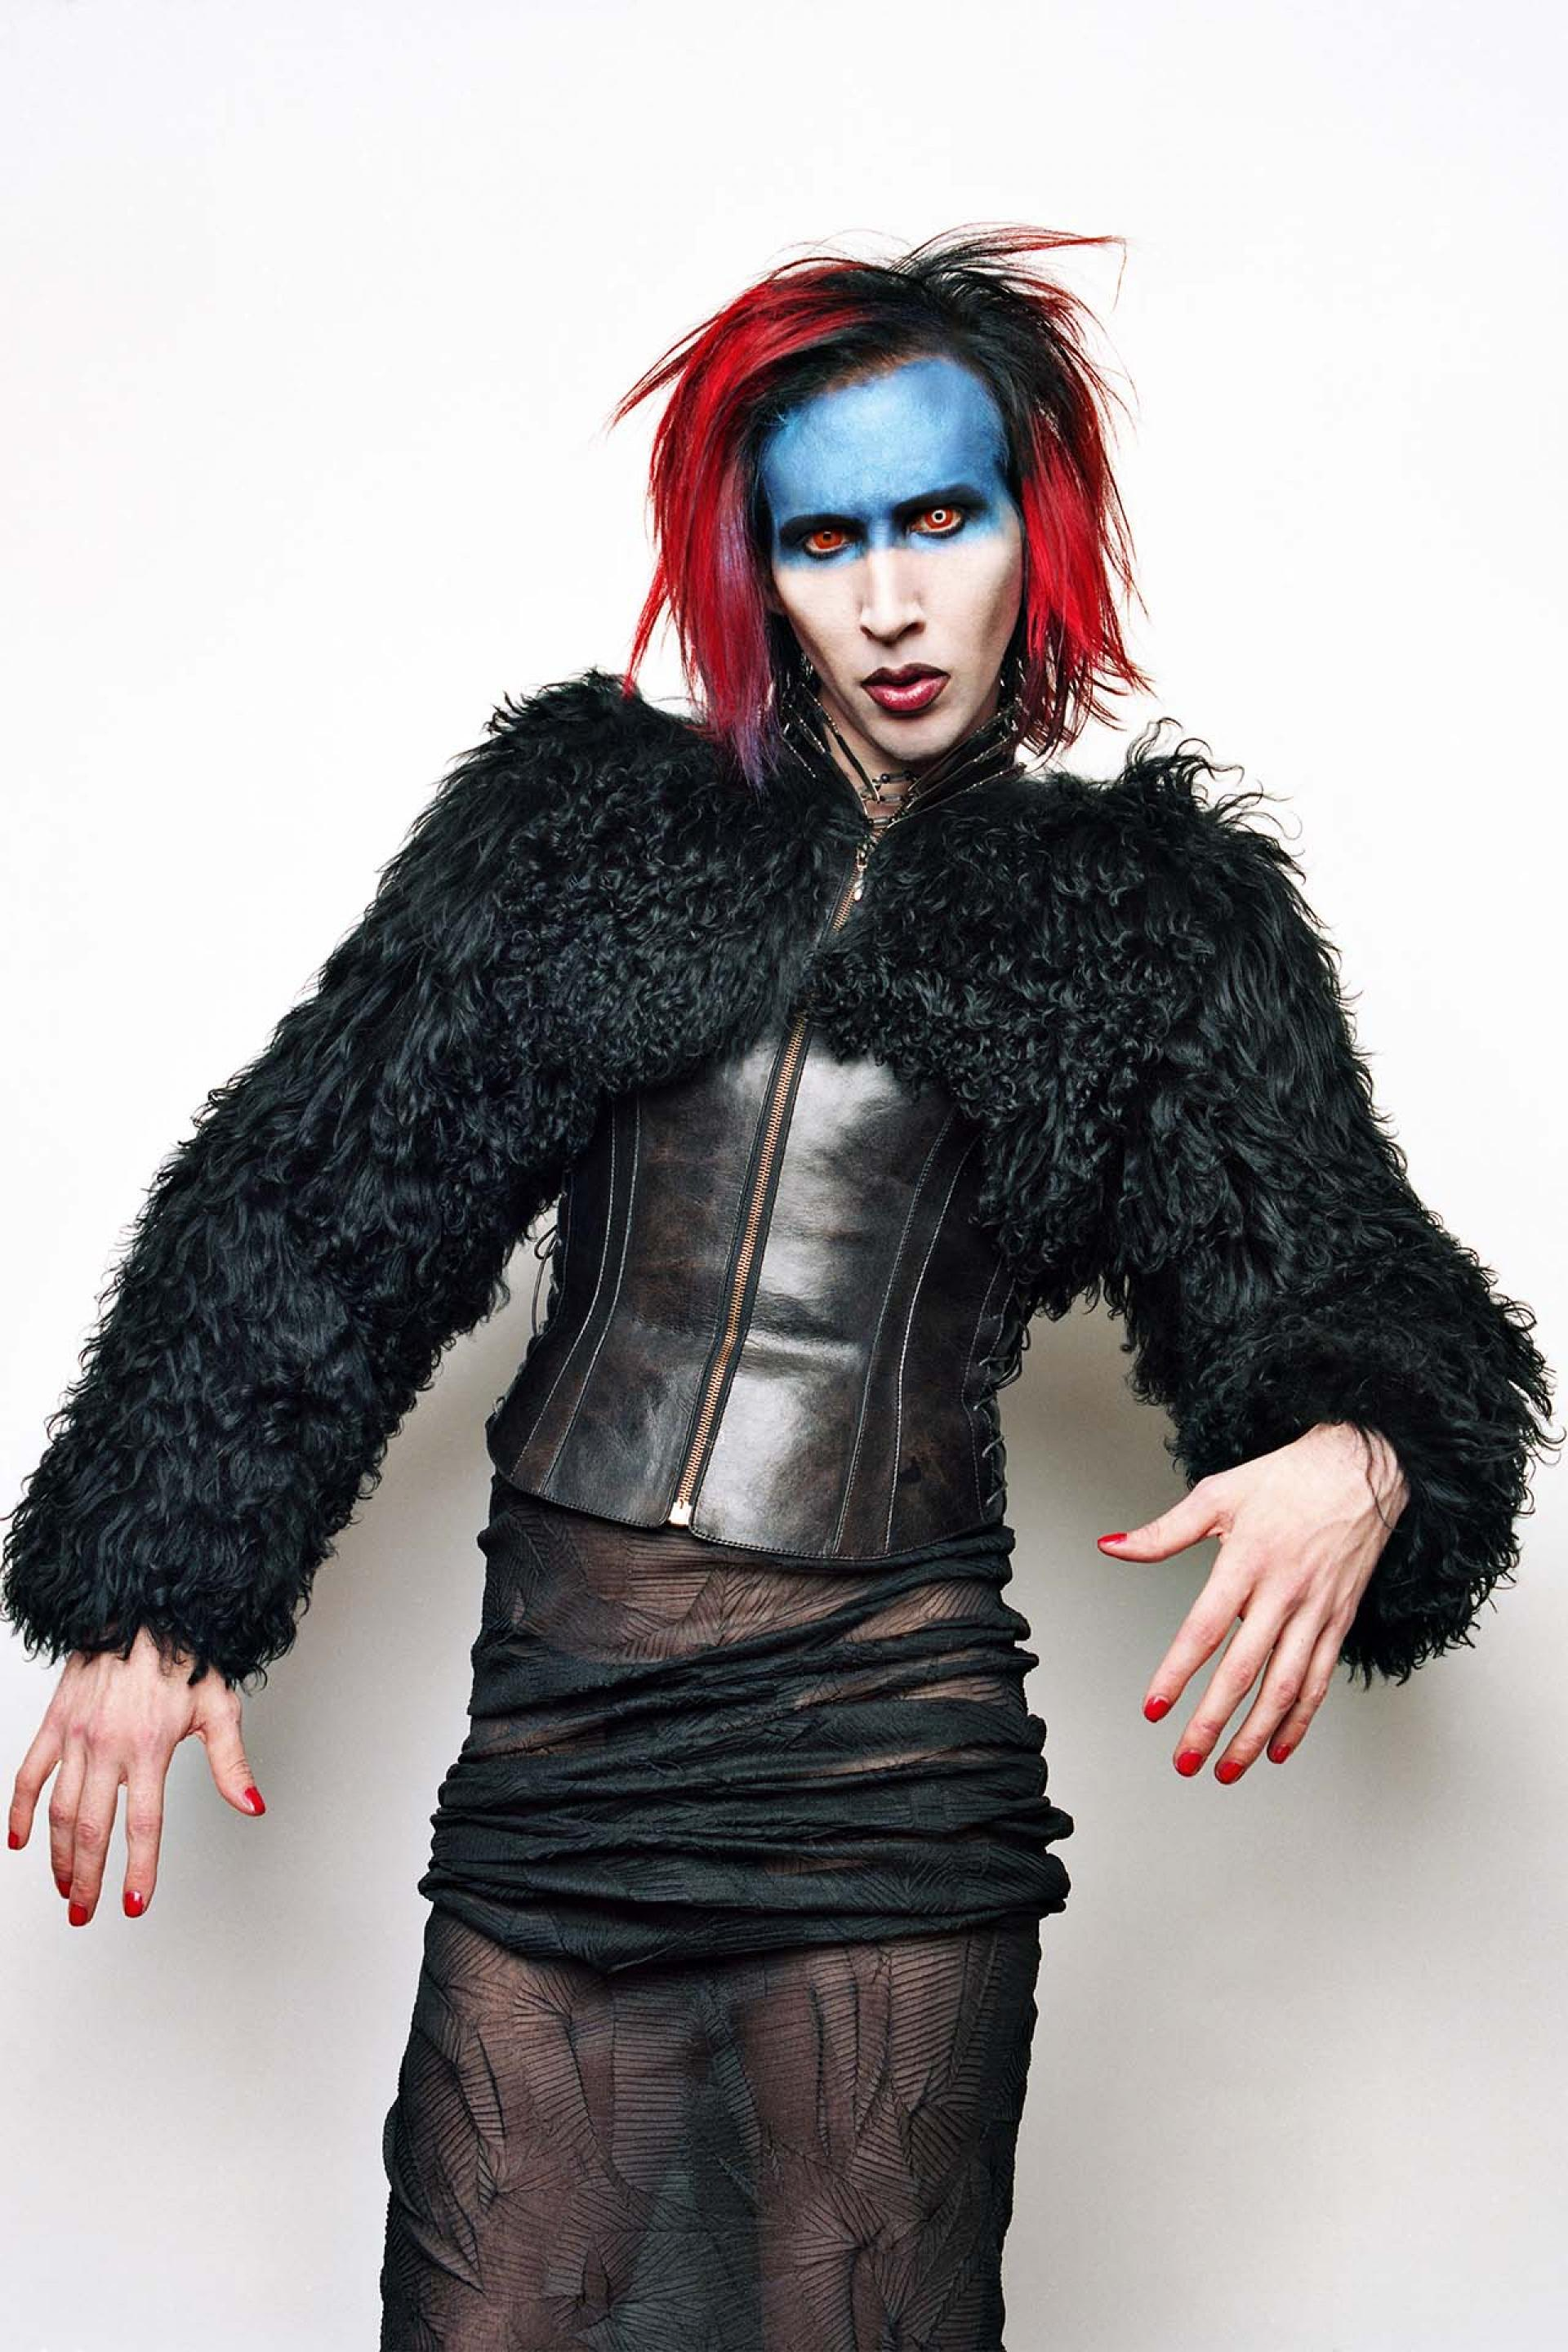 Marilyn Manson photographed by Perou